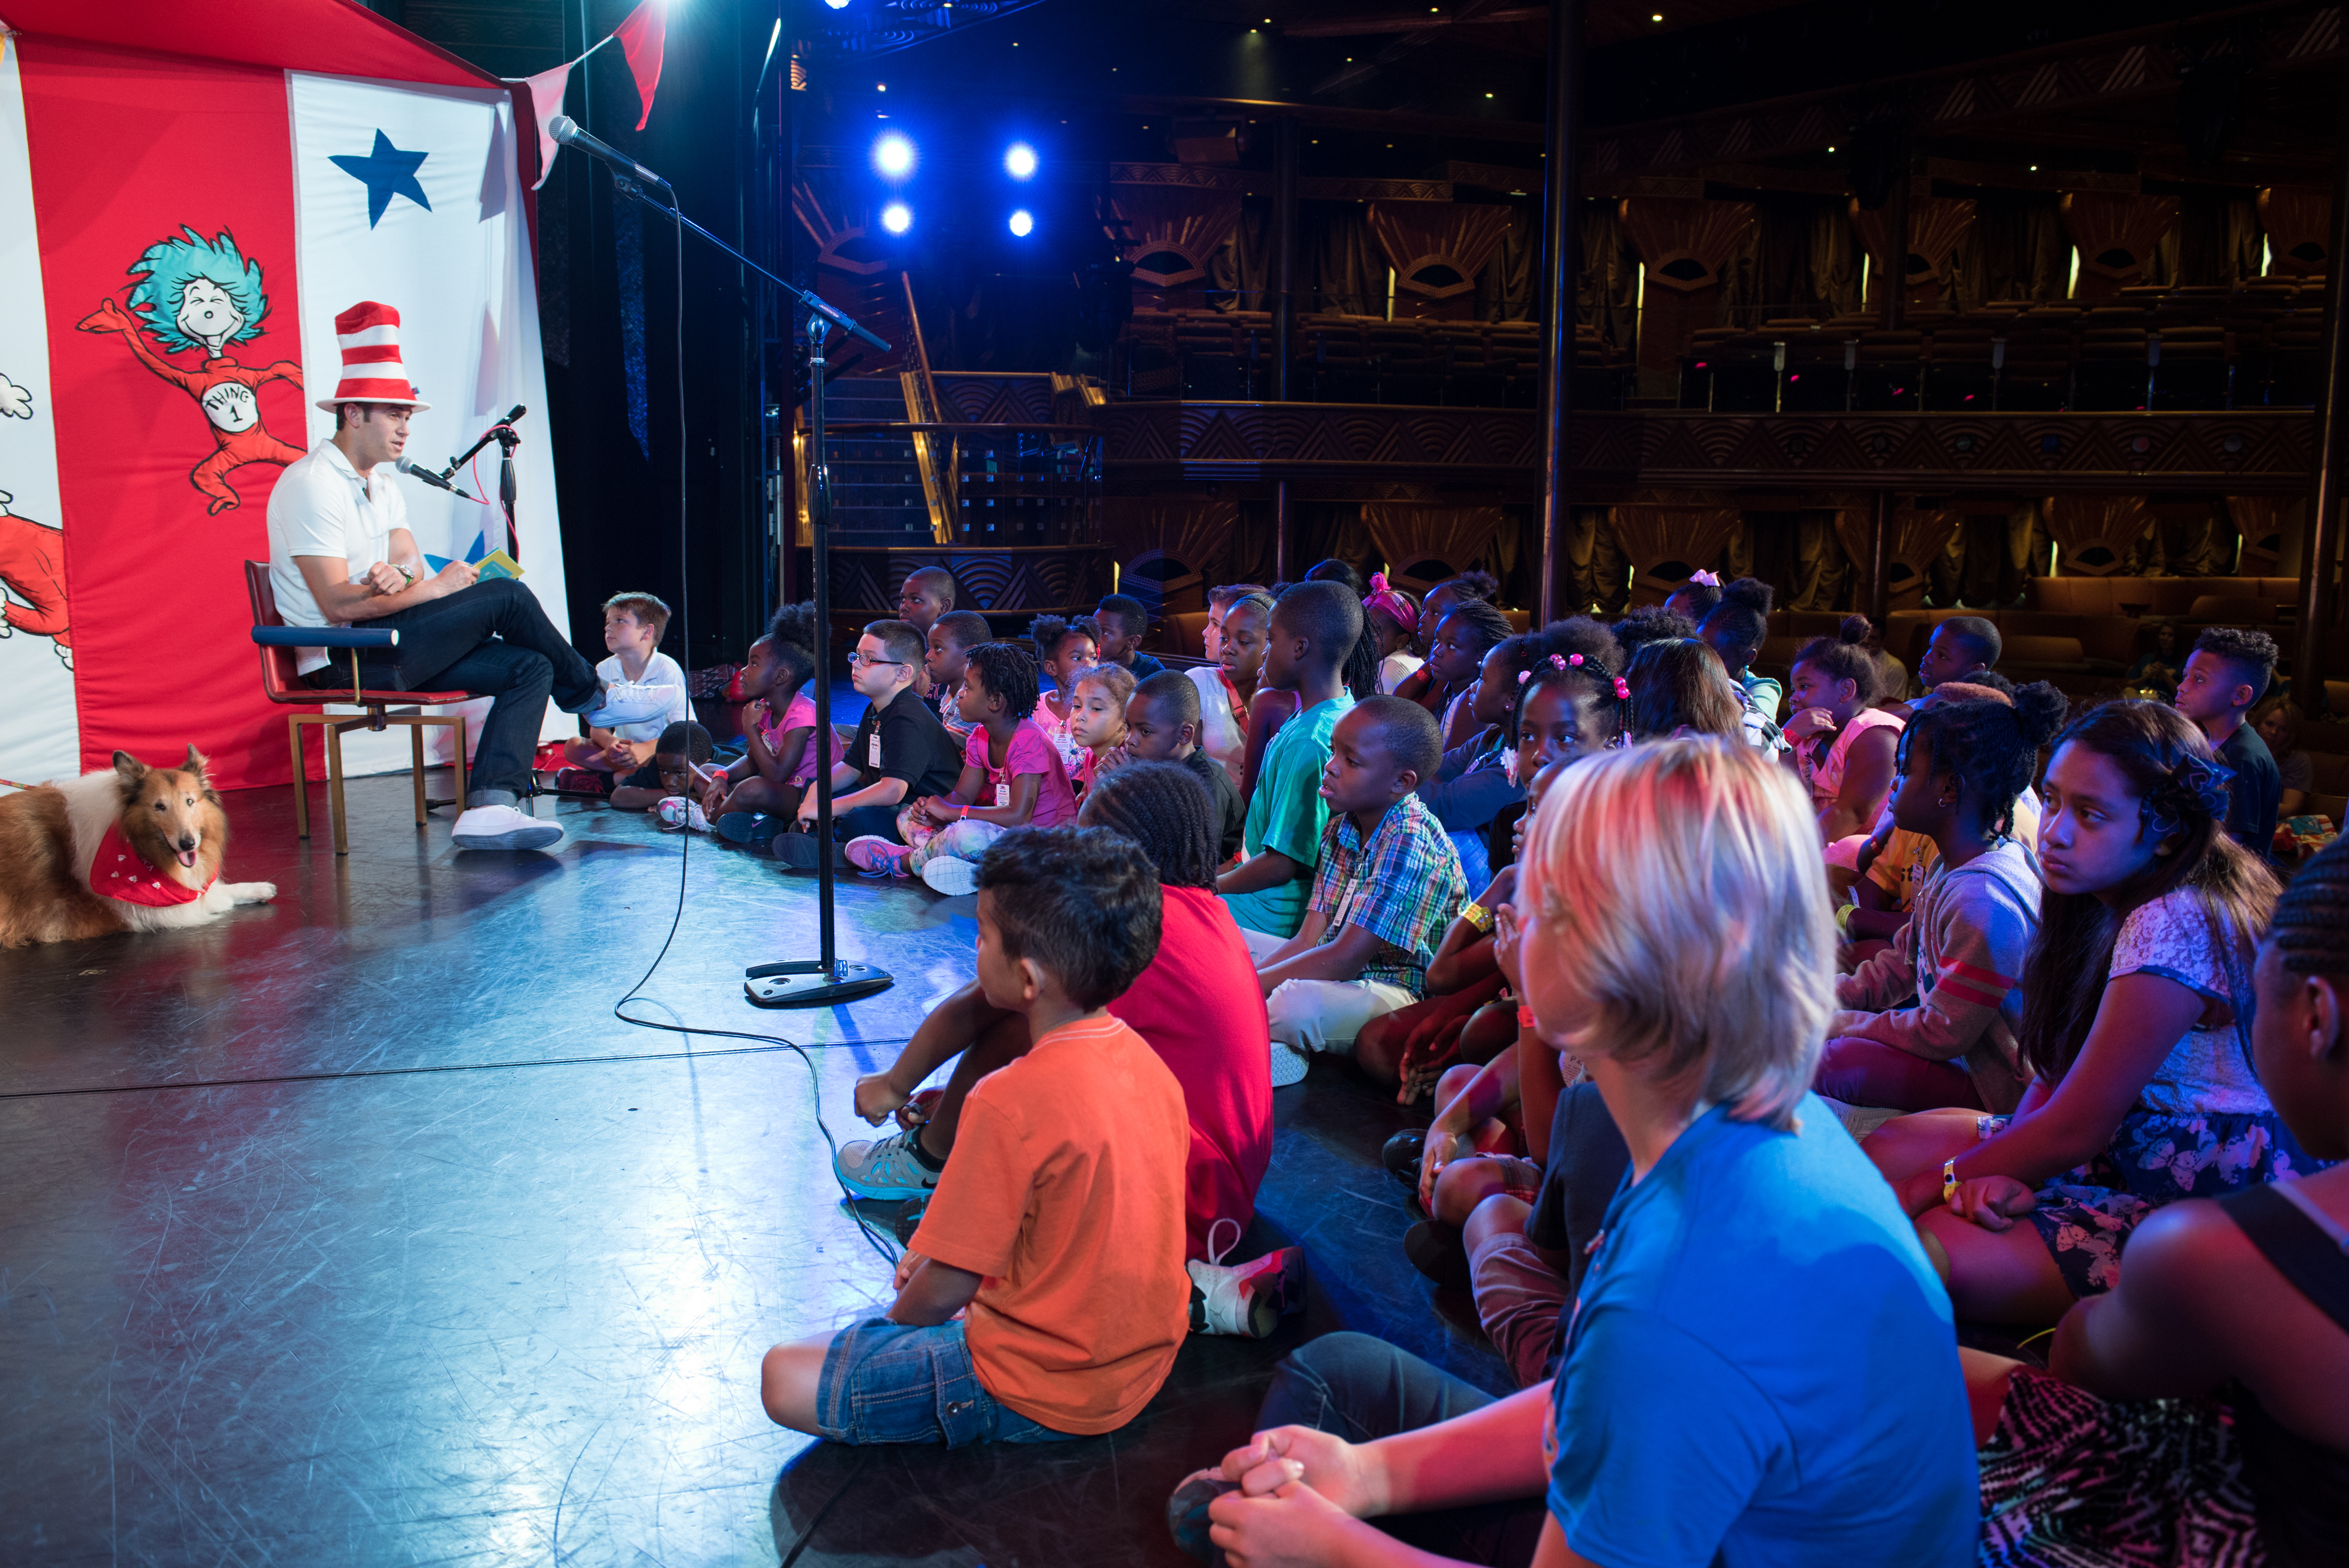 Carnival Teams Up With Dr. Seuss Enterprises To Host Celebrity Book-Reading Events For New Dr. Seuss Book 'What Pet Should I Get?' Aboard Ships In Tampa and New Orleans